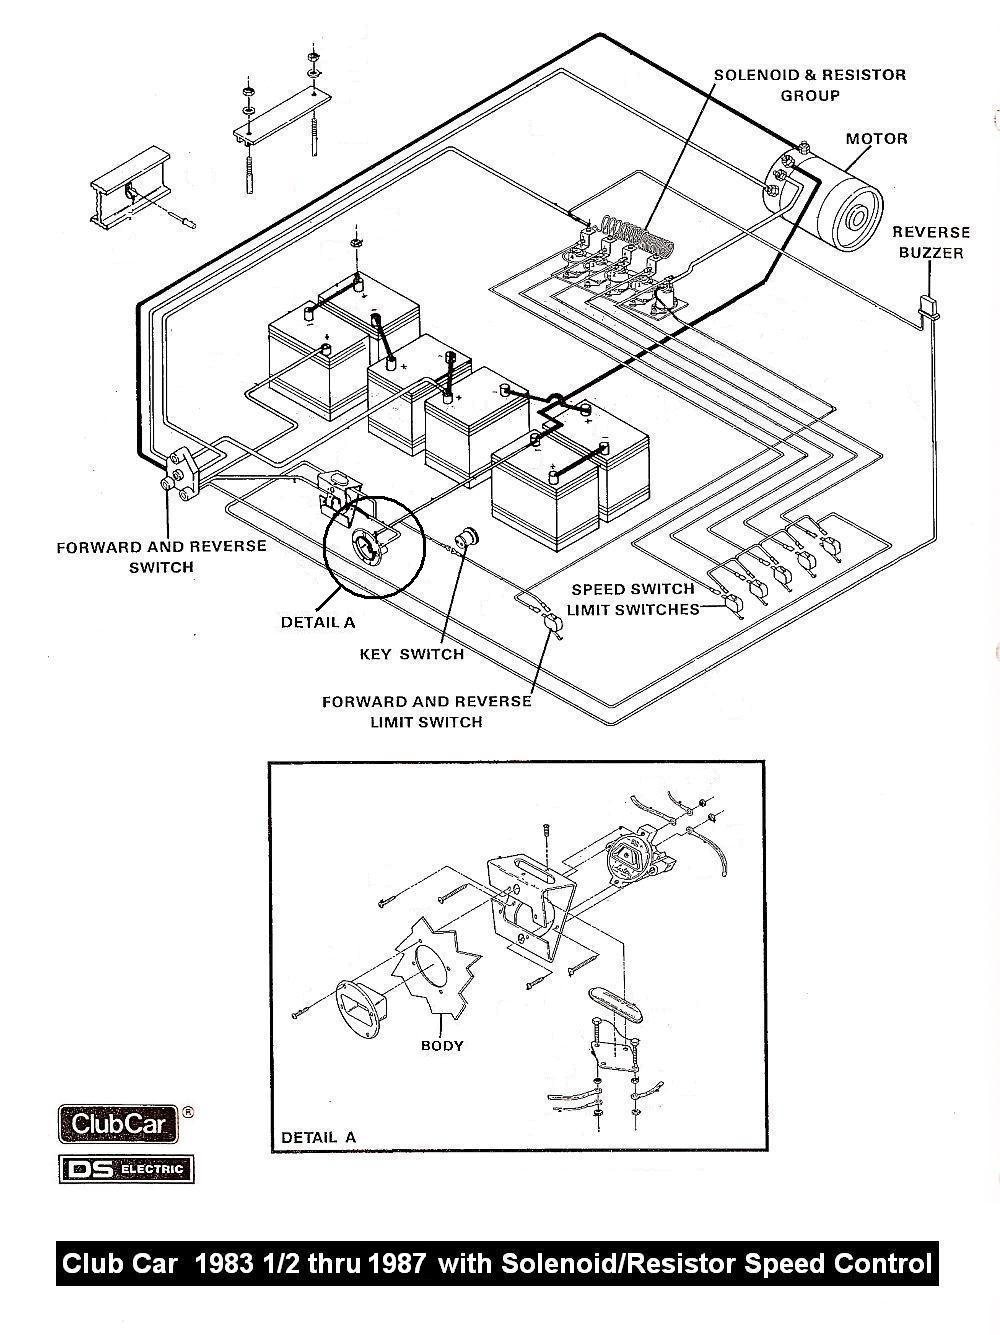 36 volt solenoid wiring diagram list of schematic circuit diagram Club Car Golf Cart Diagram